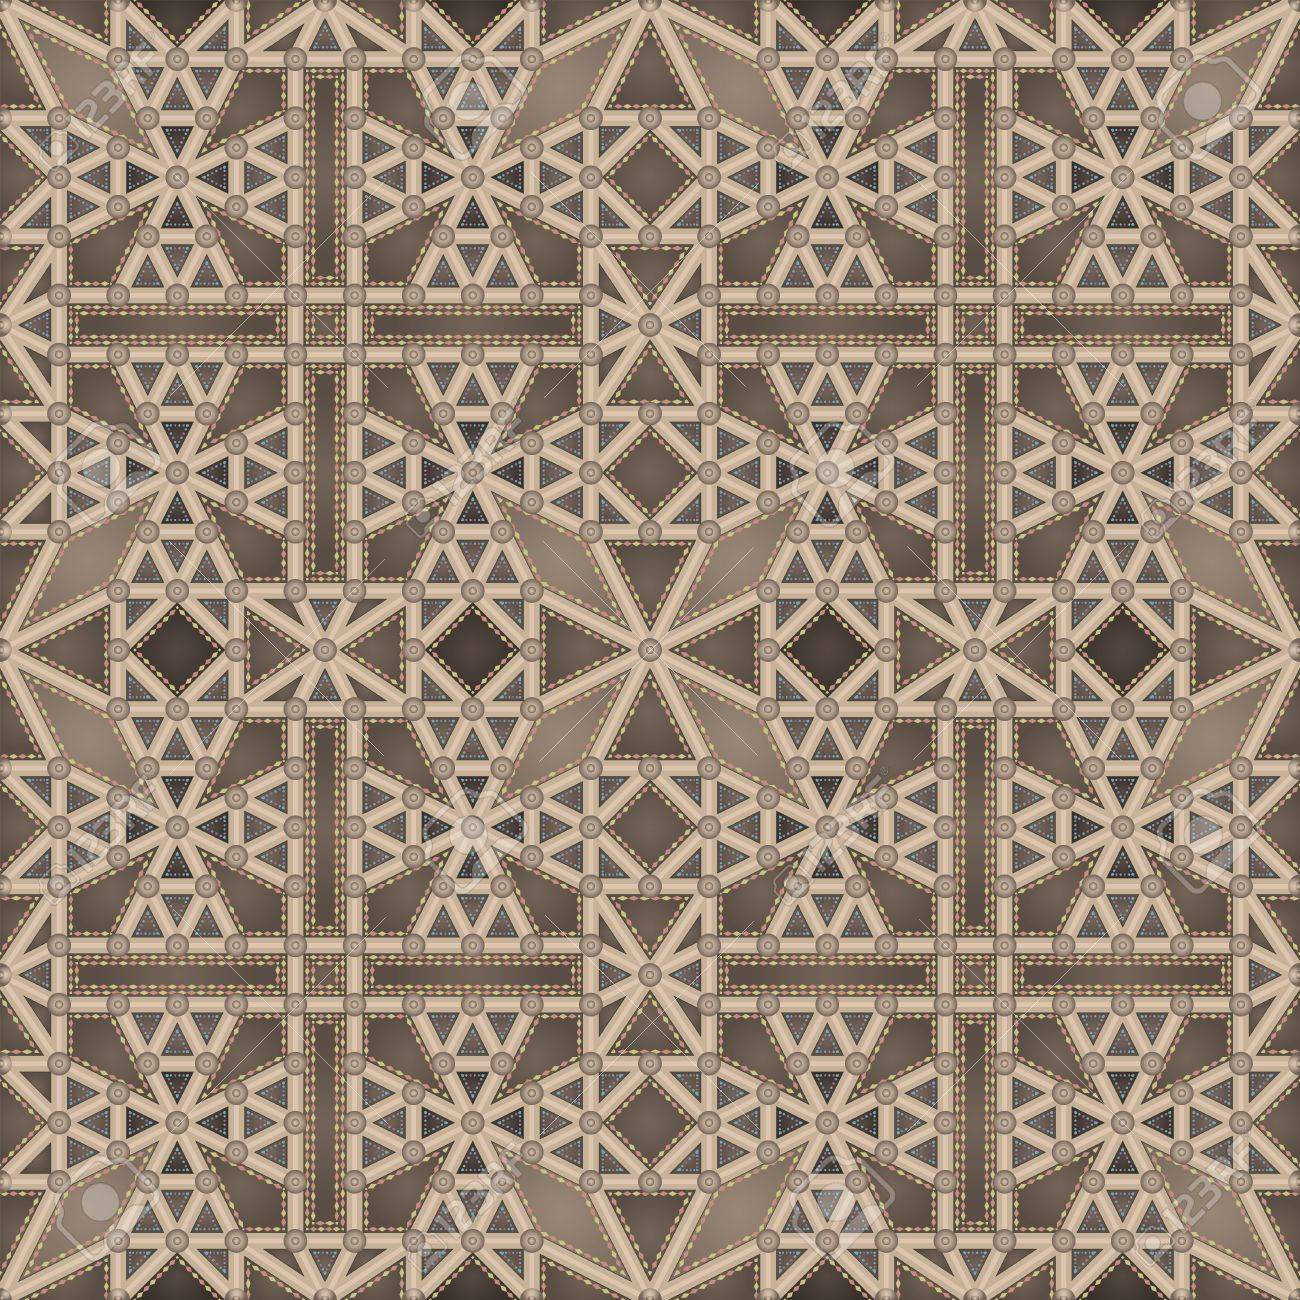 Gothic ceiling (seamless pattern) - 10033104